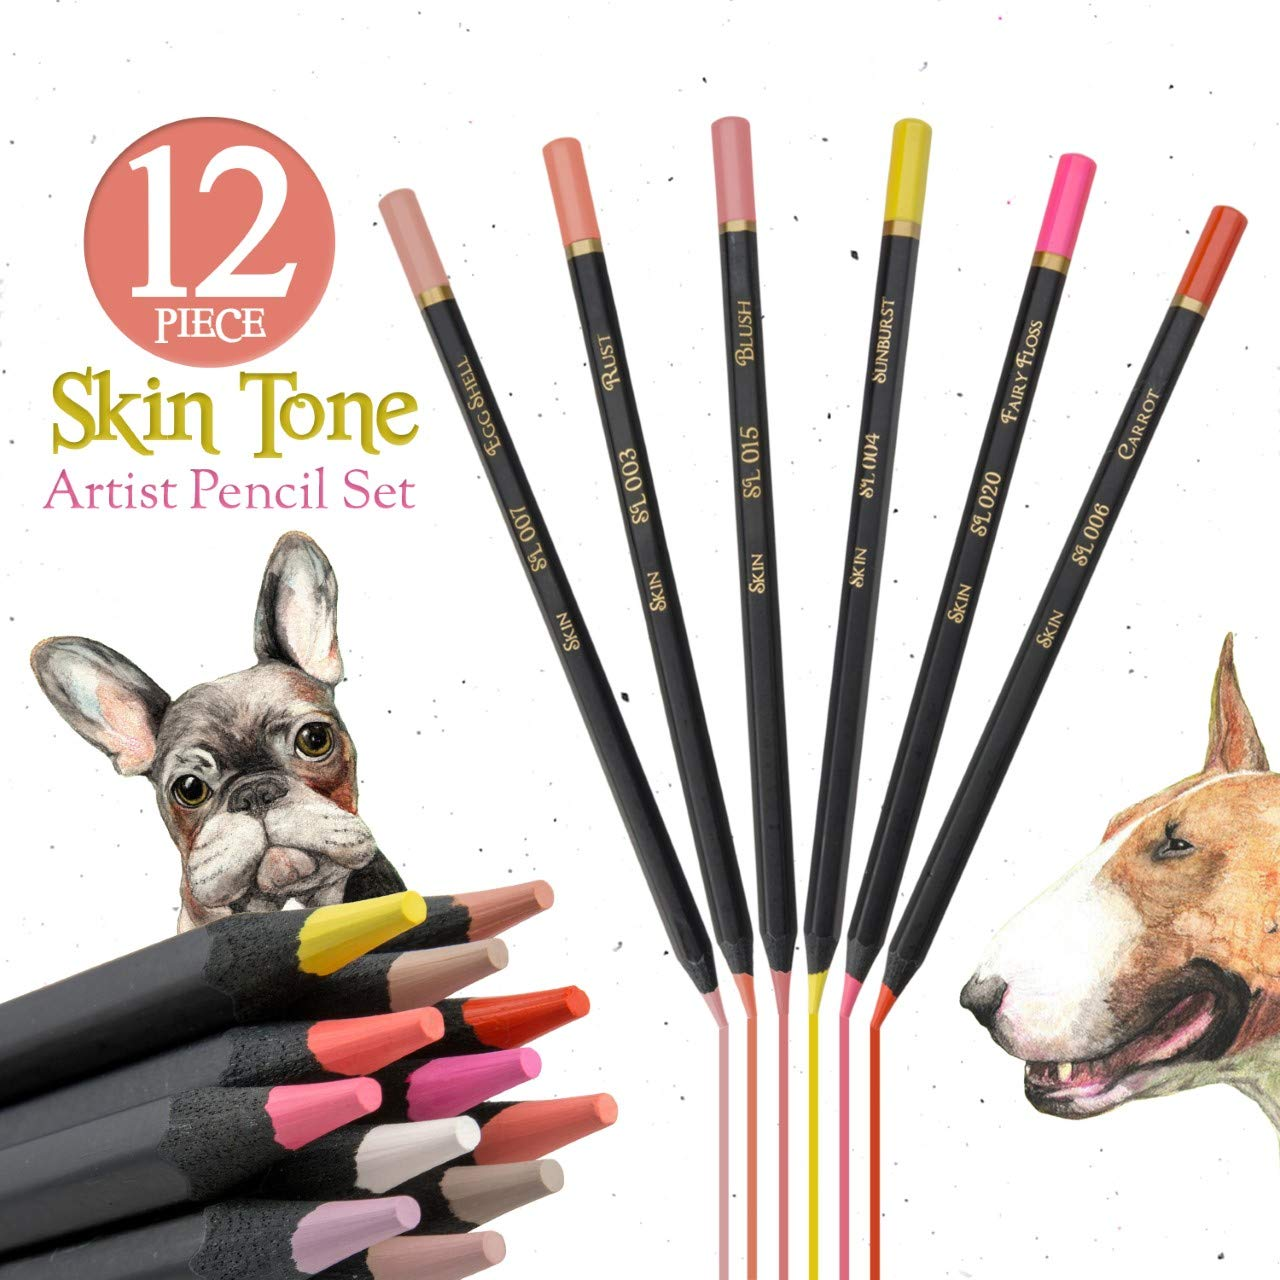 Light Skin Tone Color Pencils for Portrait Set - Colored Pencils for Adults and Skintone Artist Pencils by Medihealth 1 (Image #4)